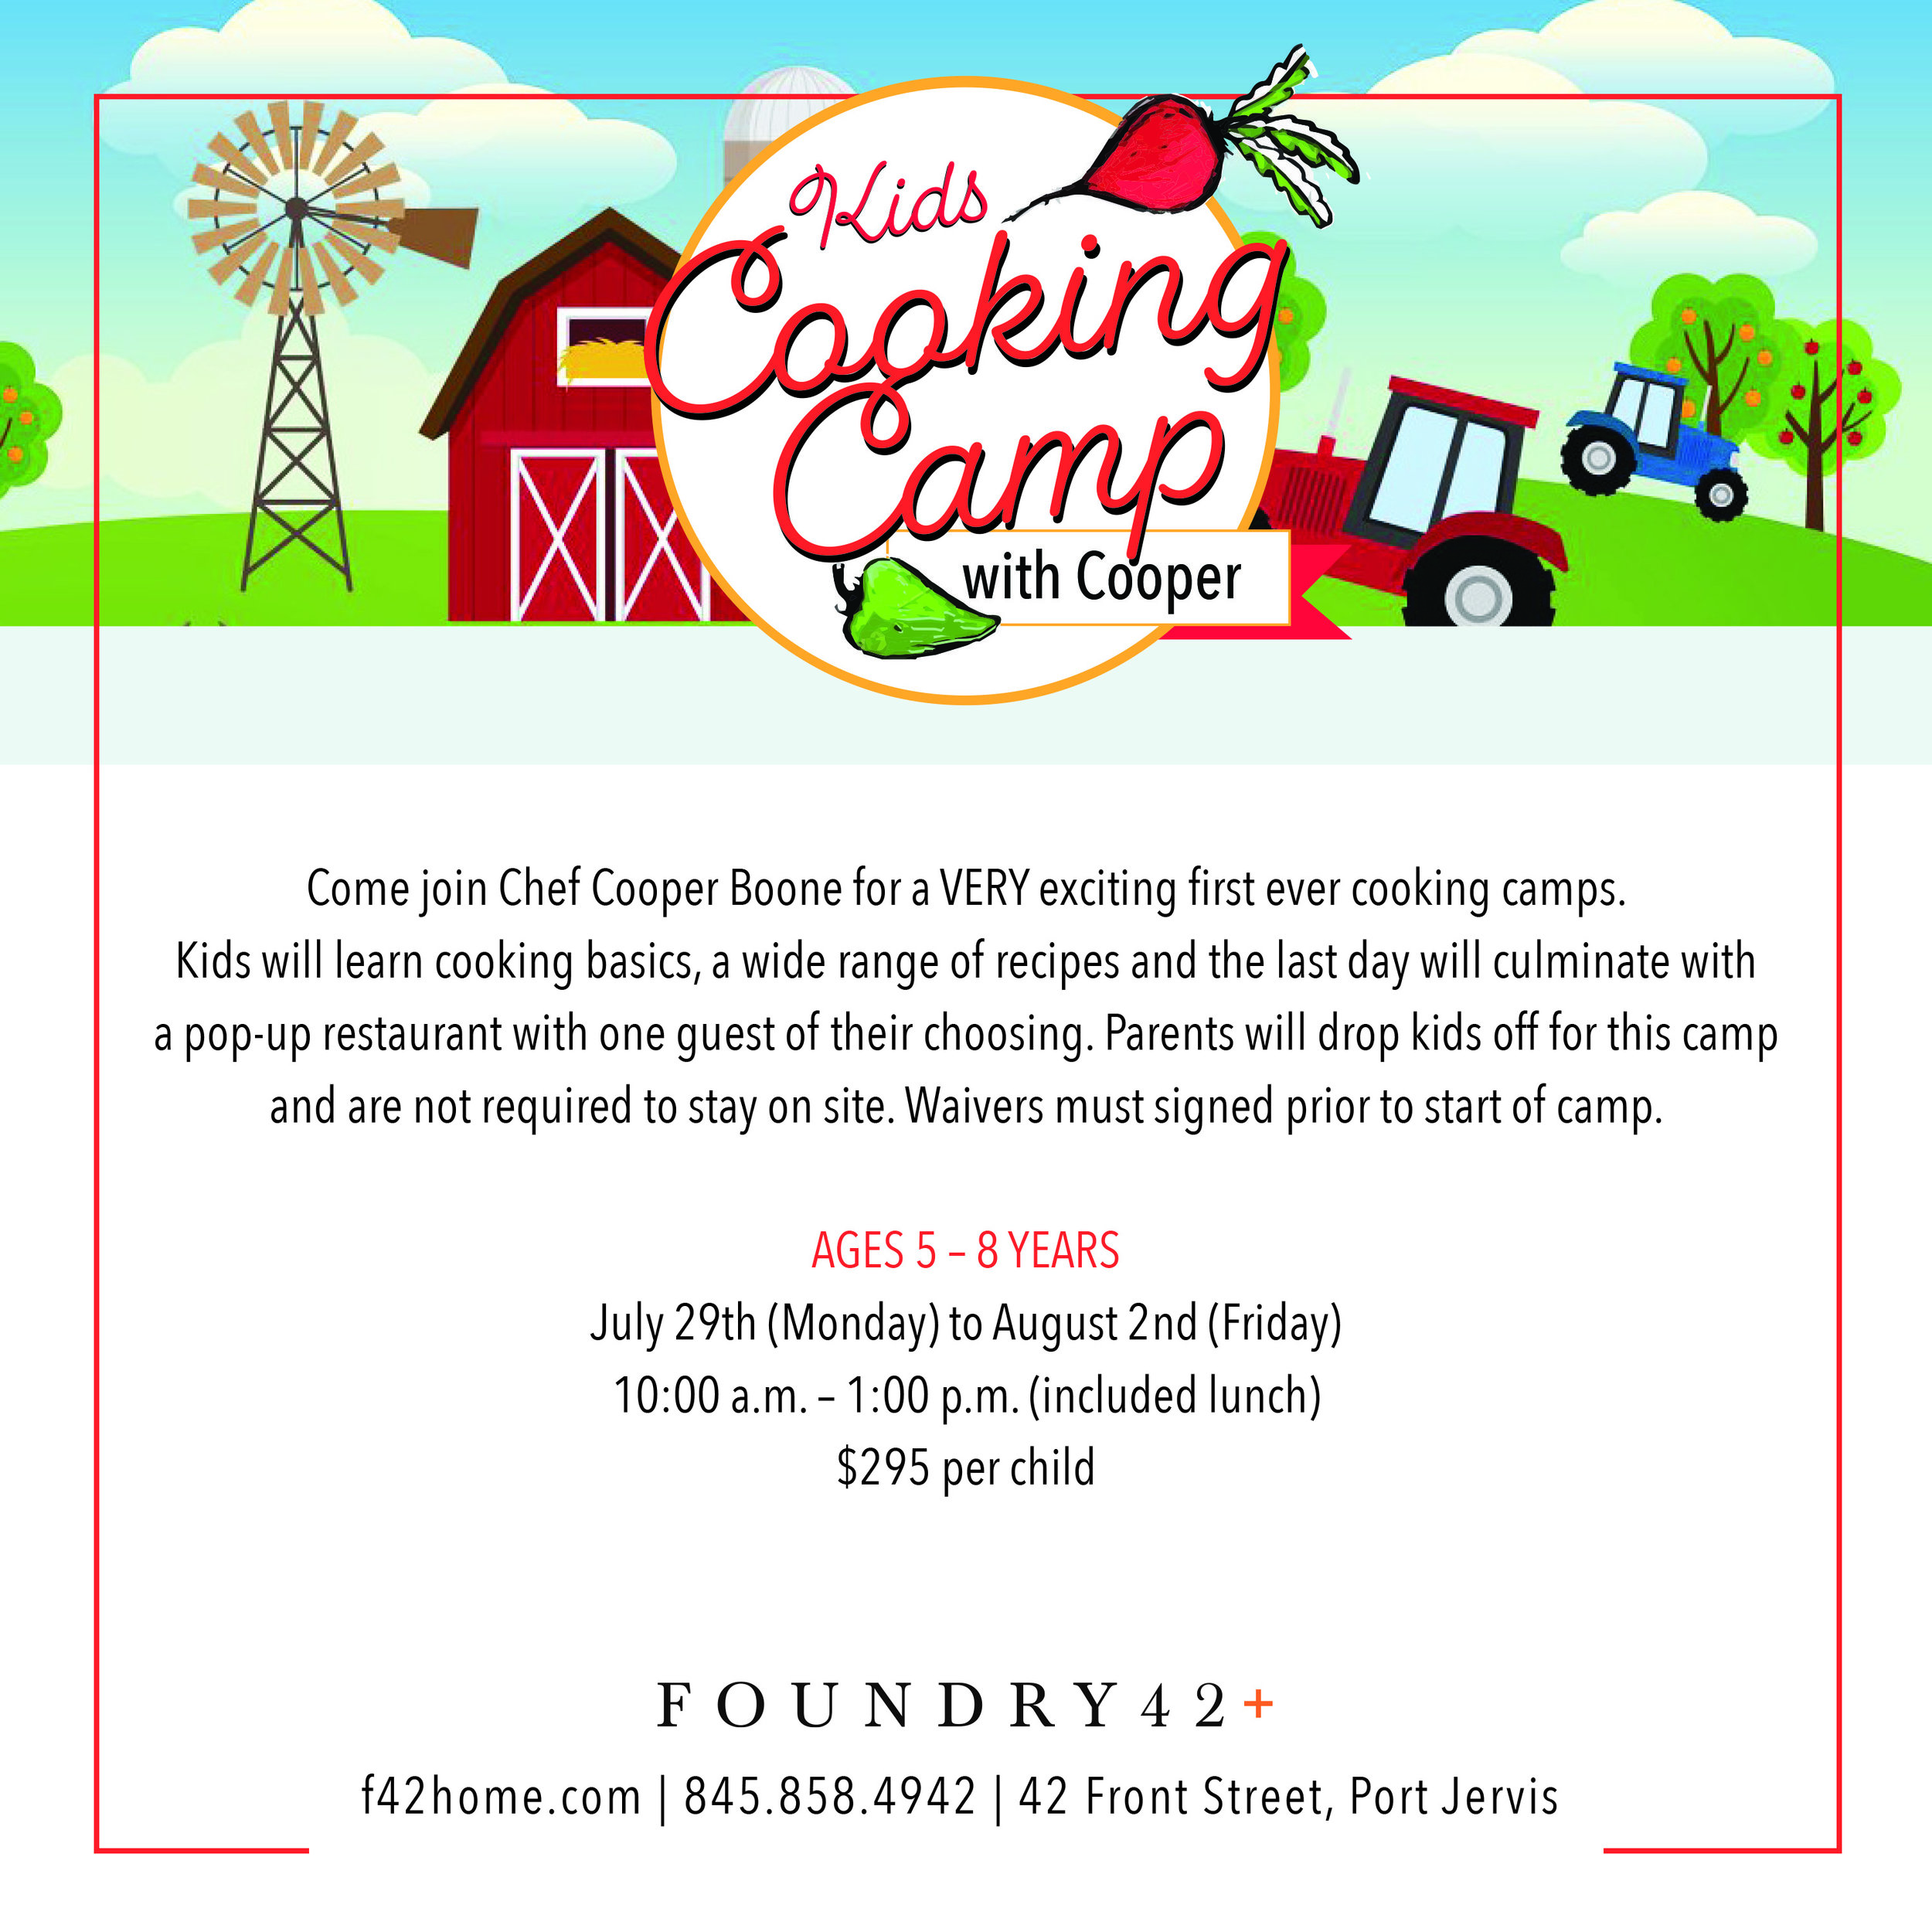 Kids Cooking Camp with Cooper (ages 5 – 8) — Foundry42+